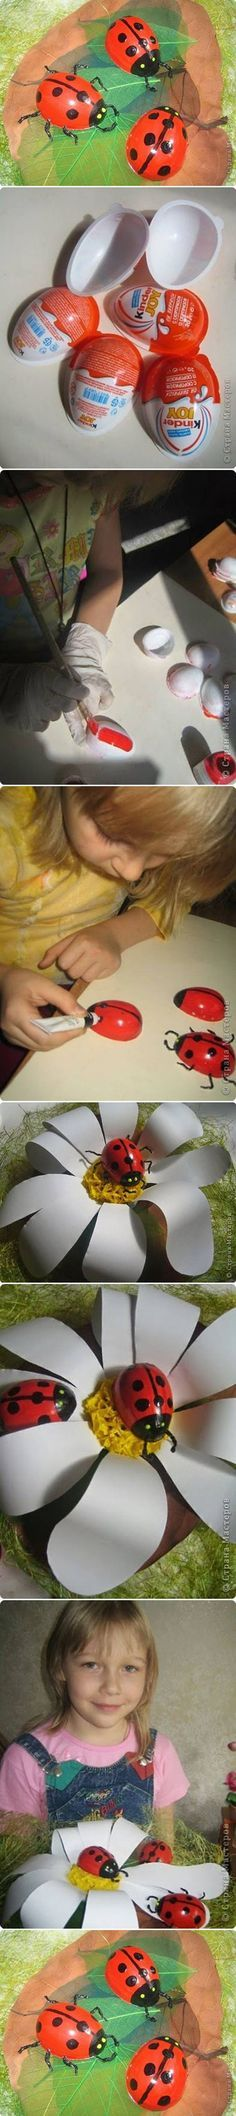 How to Make Painted Ladybug from Easter Egg #craft #Easter #decor